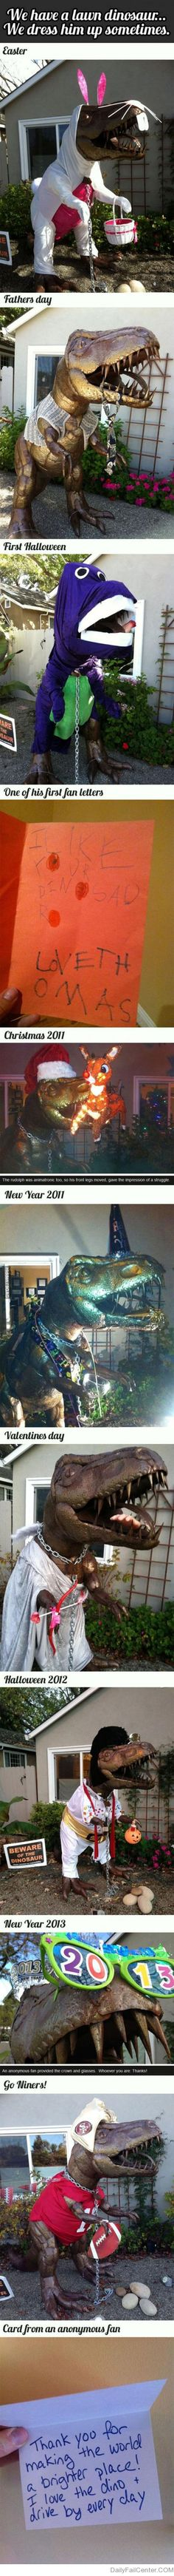 I want a lawn Dino....... @Lisa Kennedy this made me think of you.